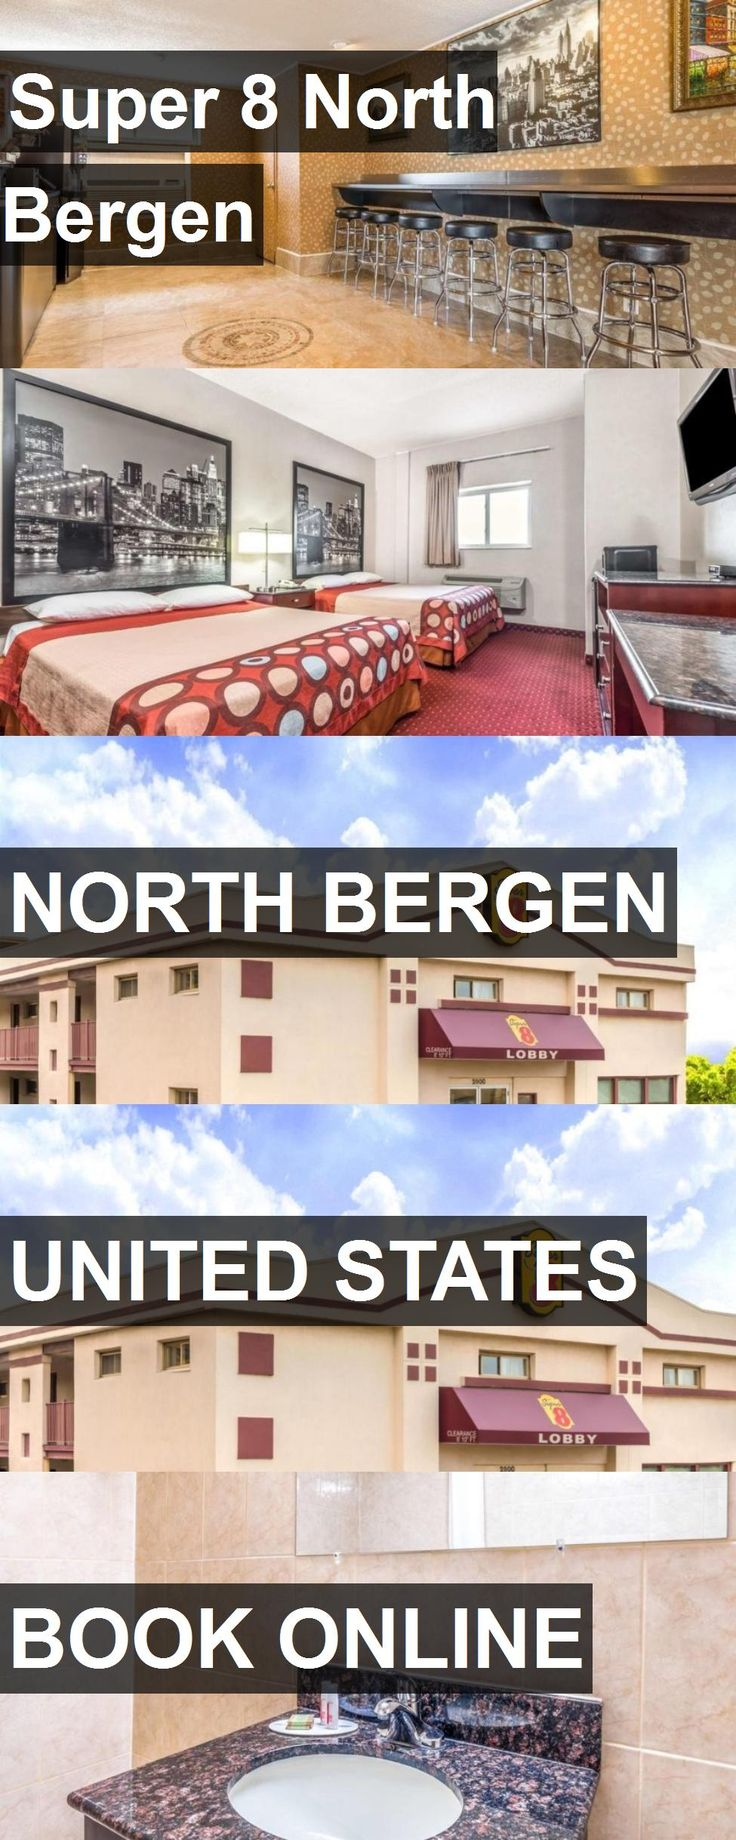 Hotel Super 8 North Bergen in North Bergen, United States. For more information, photos, reviews and best prices please follow the link. #UnitedStates #NorthBergen #Super8NorthBergen #hotel #travel #vacation